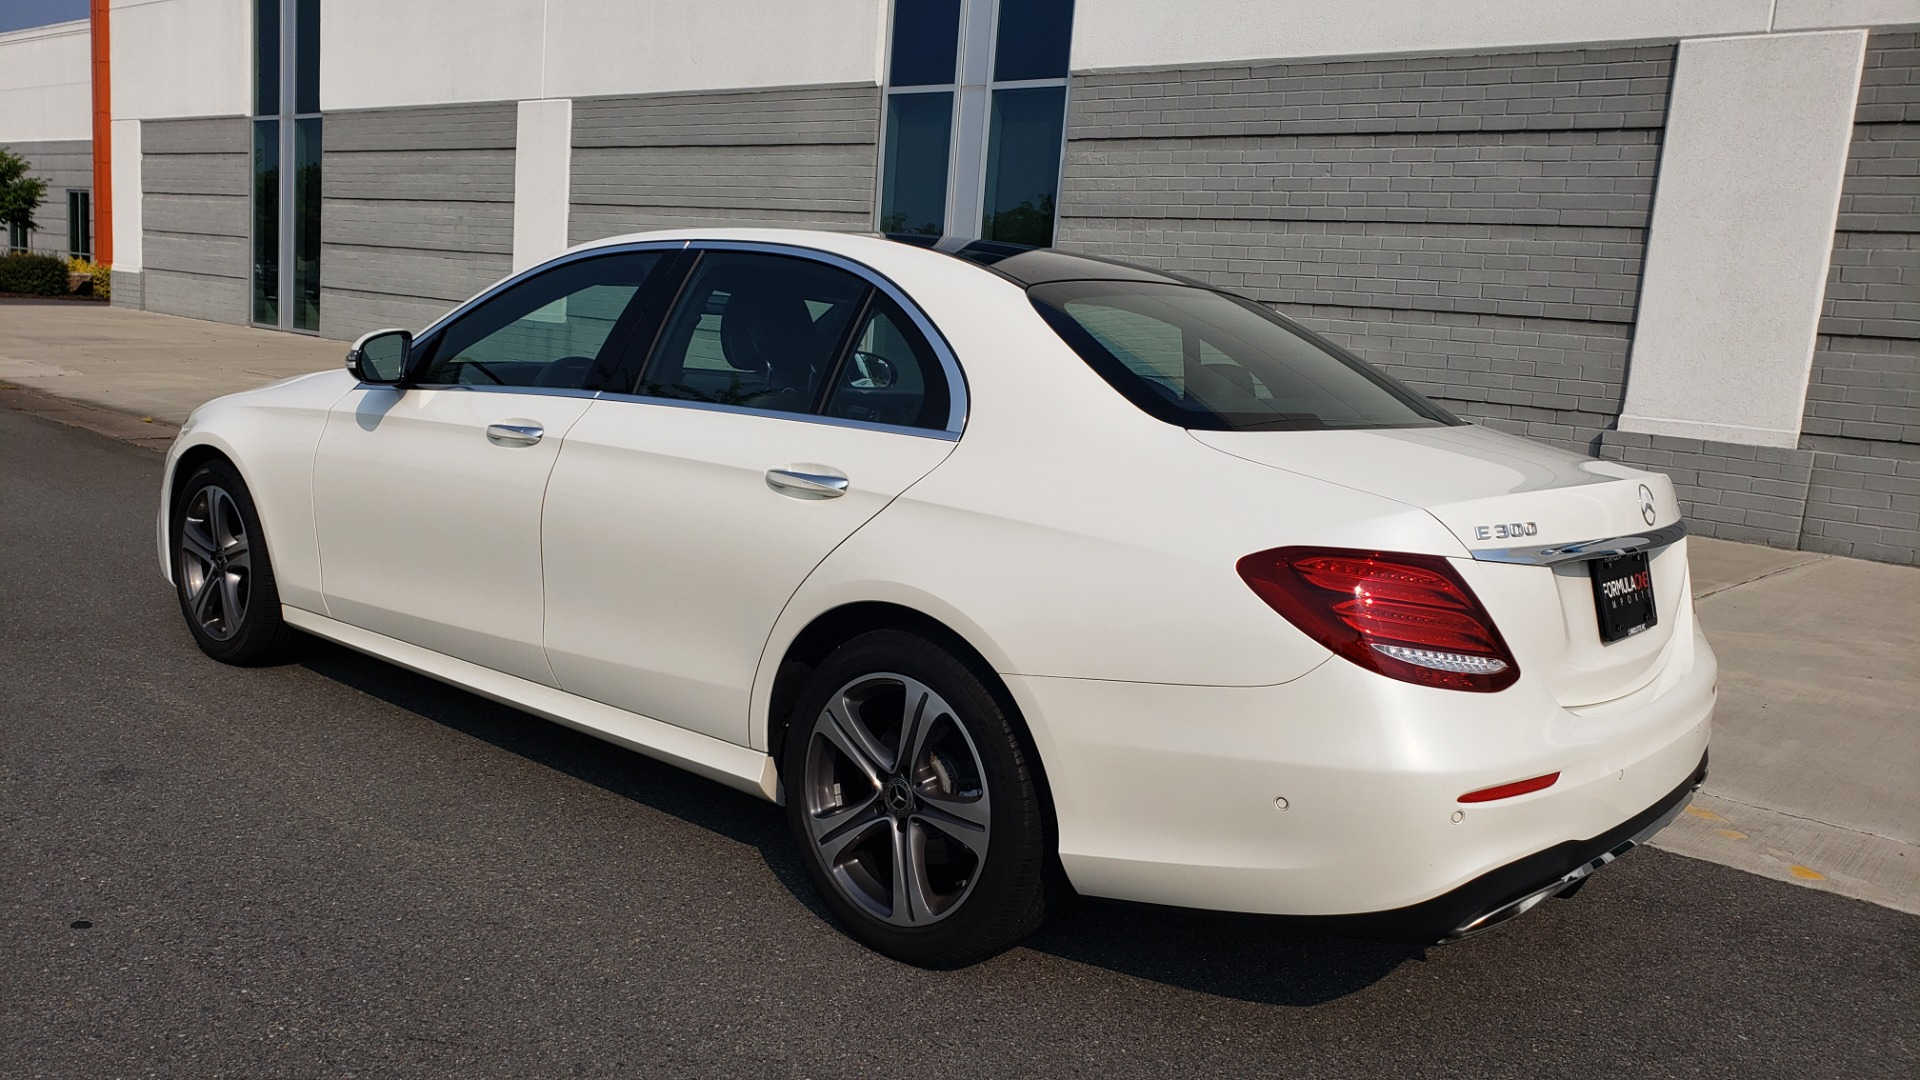 Used 2018 Mercedes-Benz E-CLASS E 300 4MATIC / PREMIUM / NAV / PANO-ROOF / BURMESTER / REARVIEW for sale $41,995 at Formula Imports in Charlotte NC 28227 7